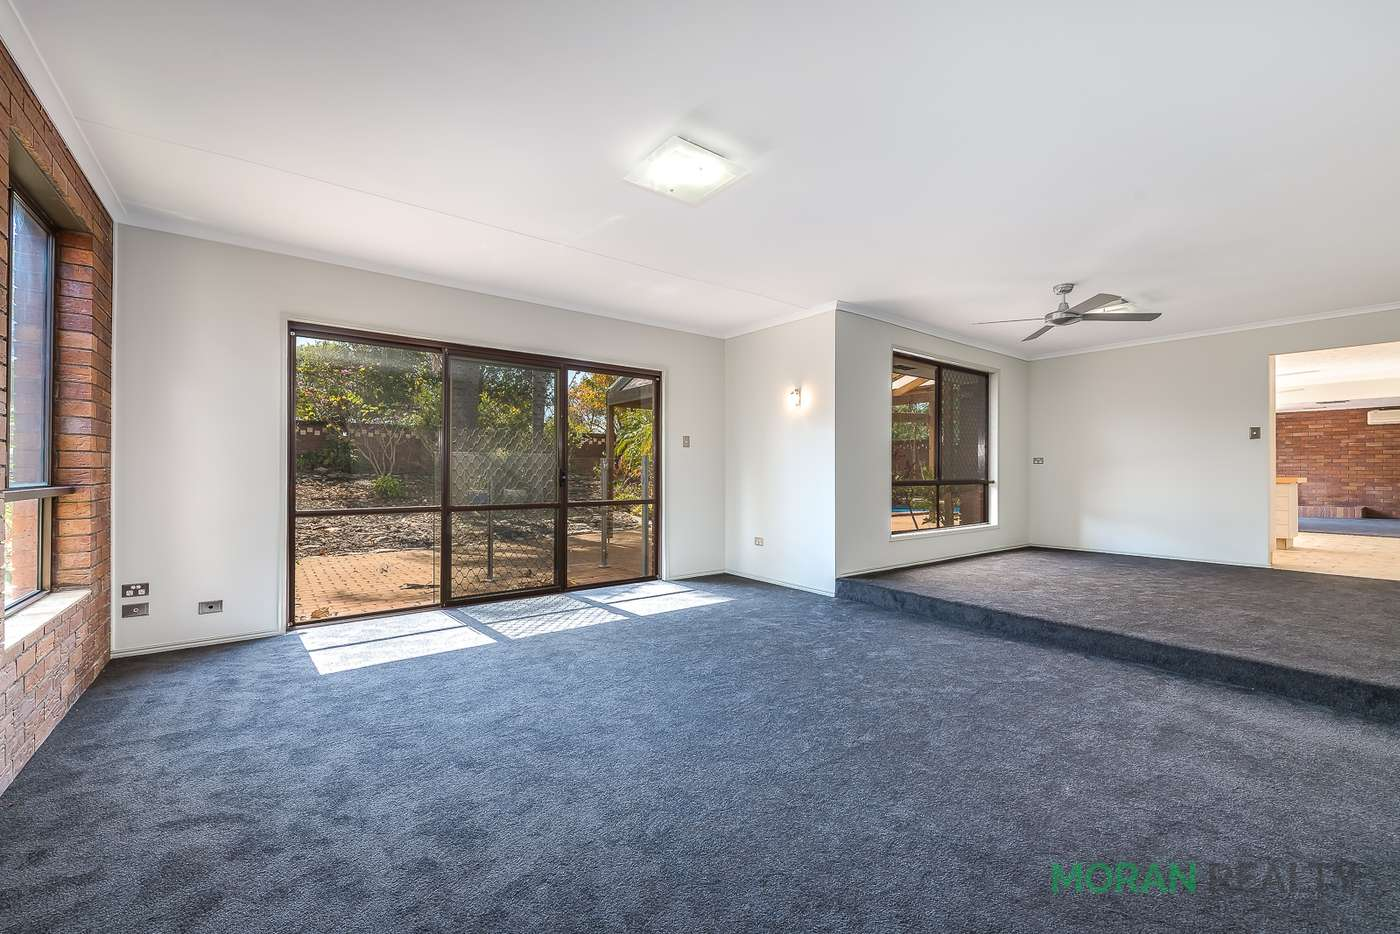 Sixth view of Homely house listing, 178 Napper Road, Parkwood QLD 4214